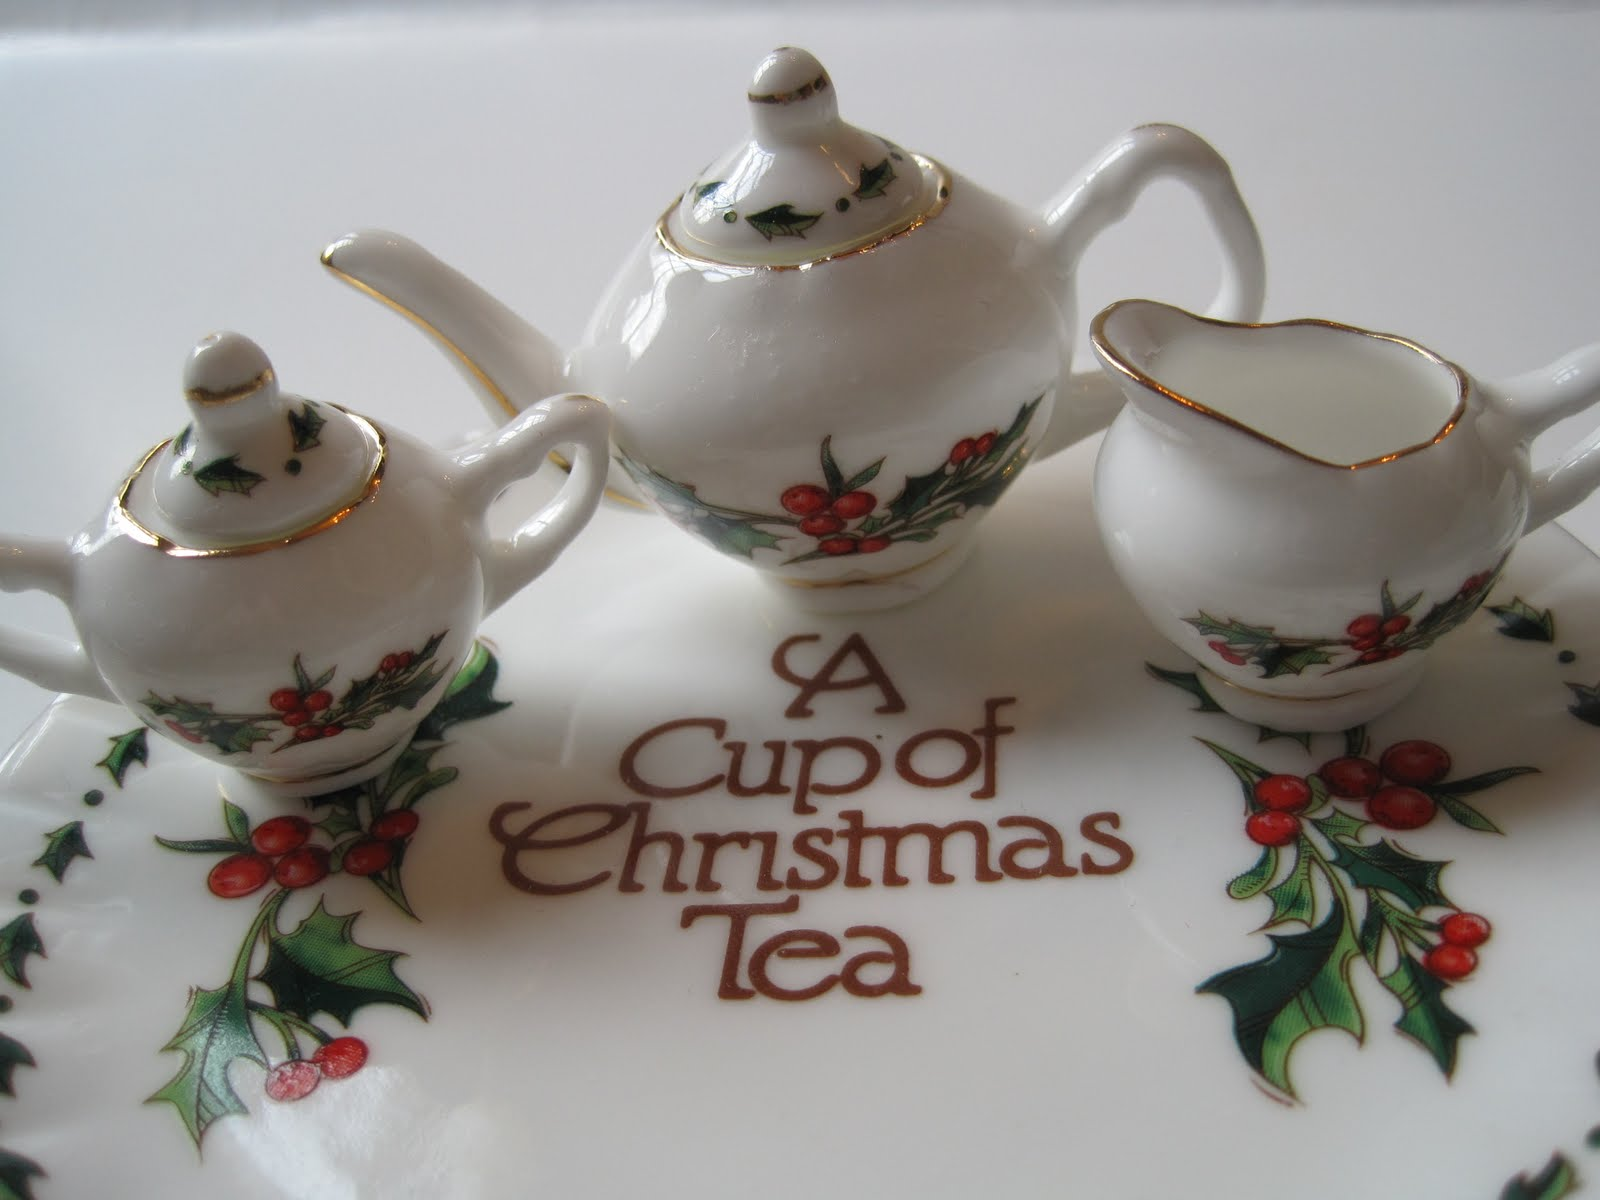 Tea With Friends: A tiny Christmas tea set